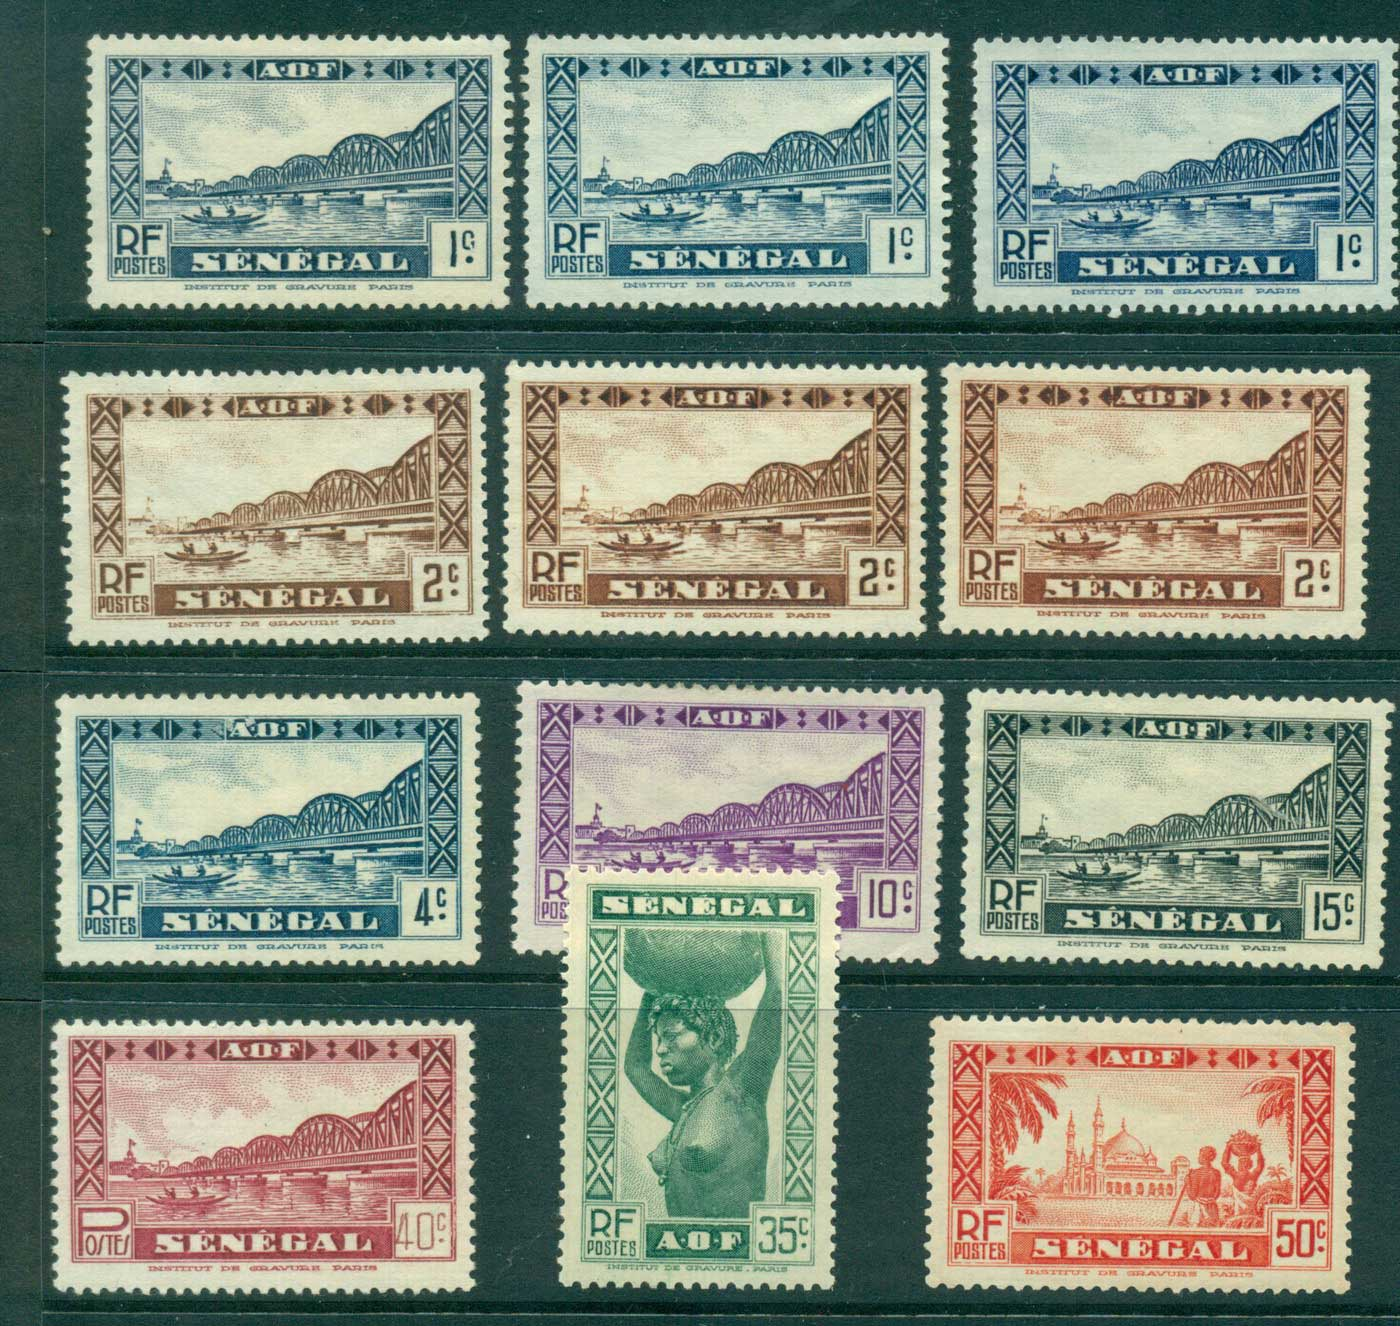 Senegal 1935-40 Pictorials Asst (12) MNG lot38584